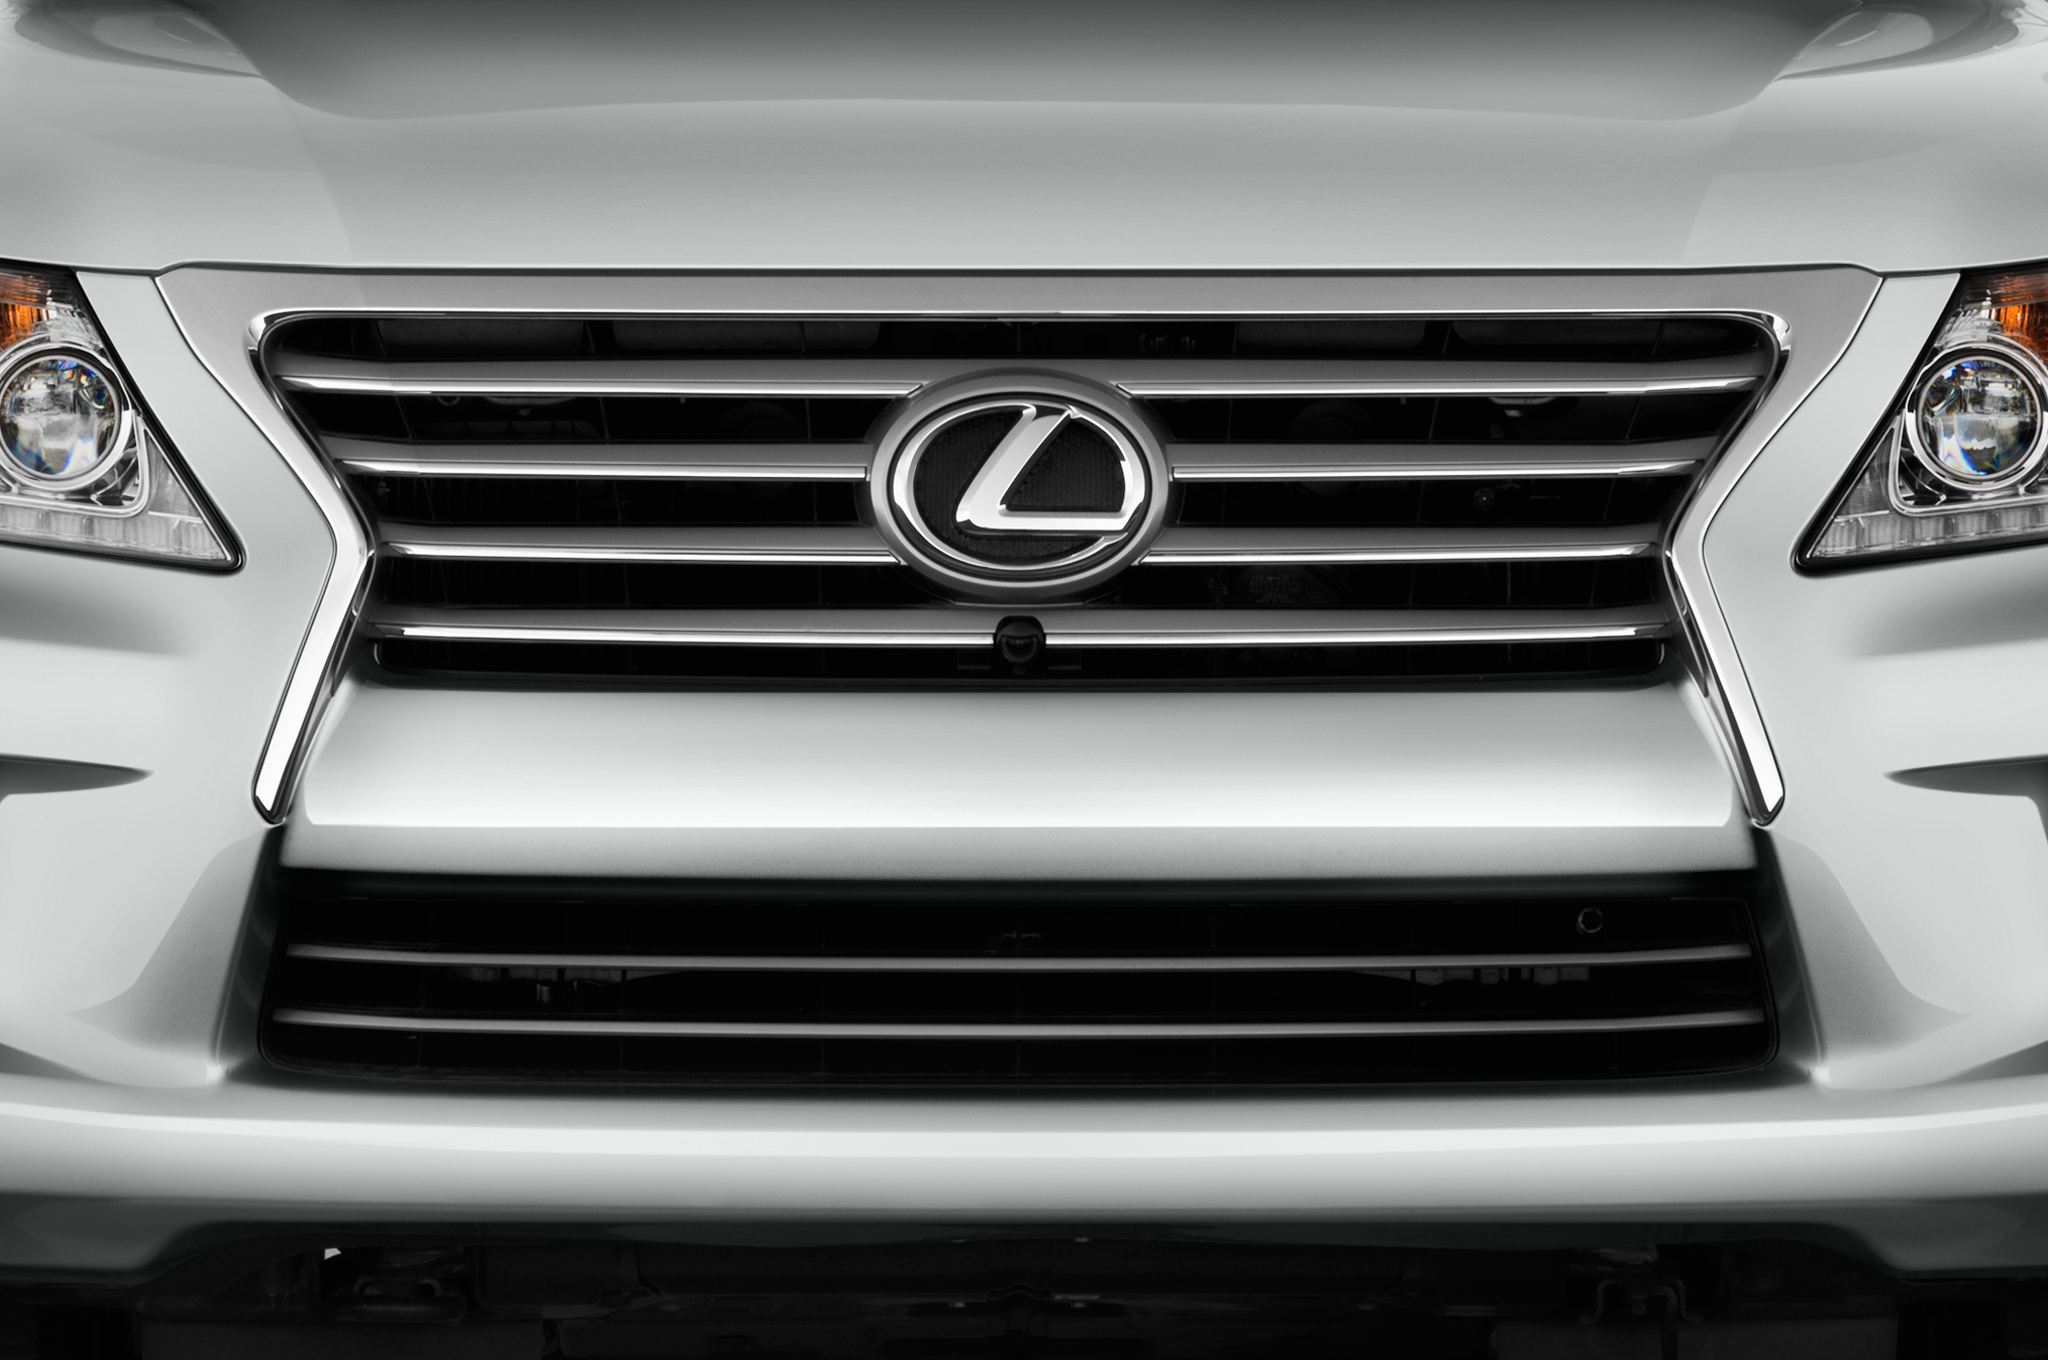 Used Lexus for Sale in Fort Smith AR Orr Nissan of Fort Smith